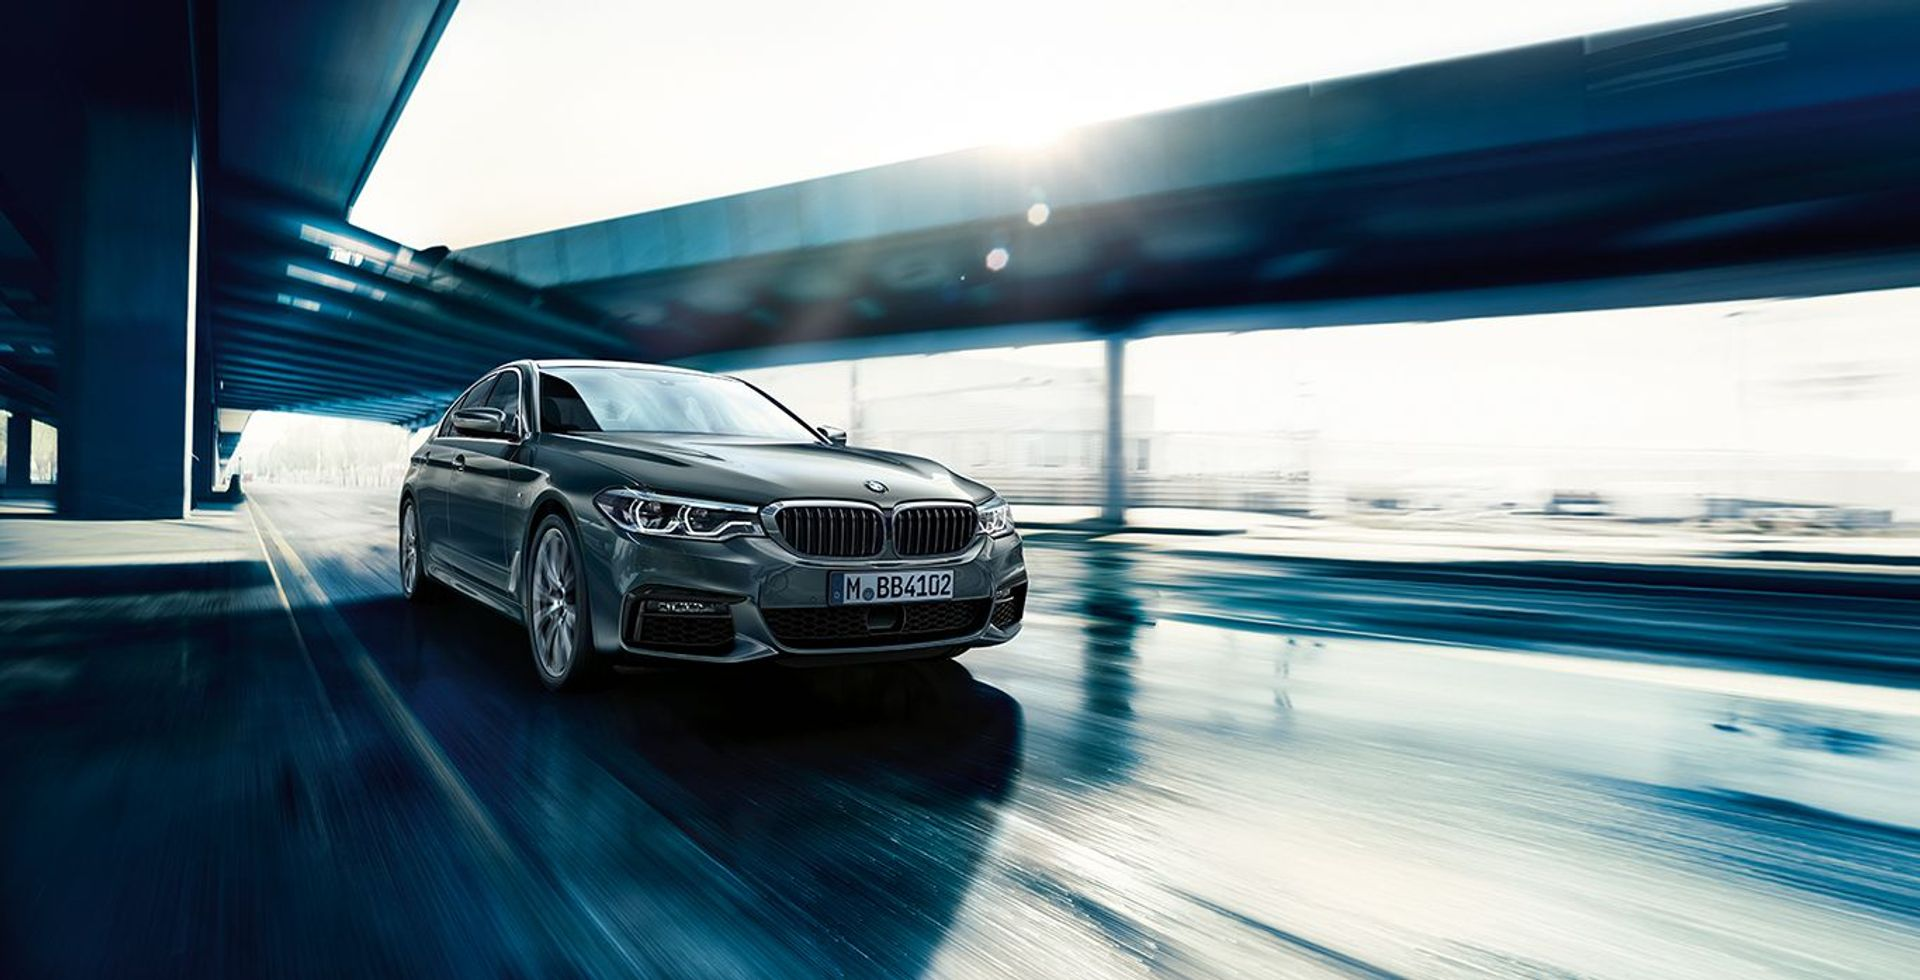 BMW 5 Series SE image